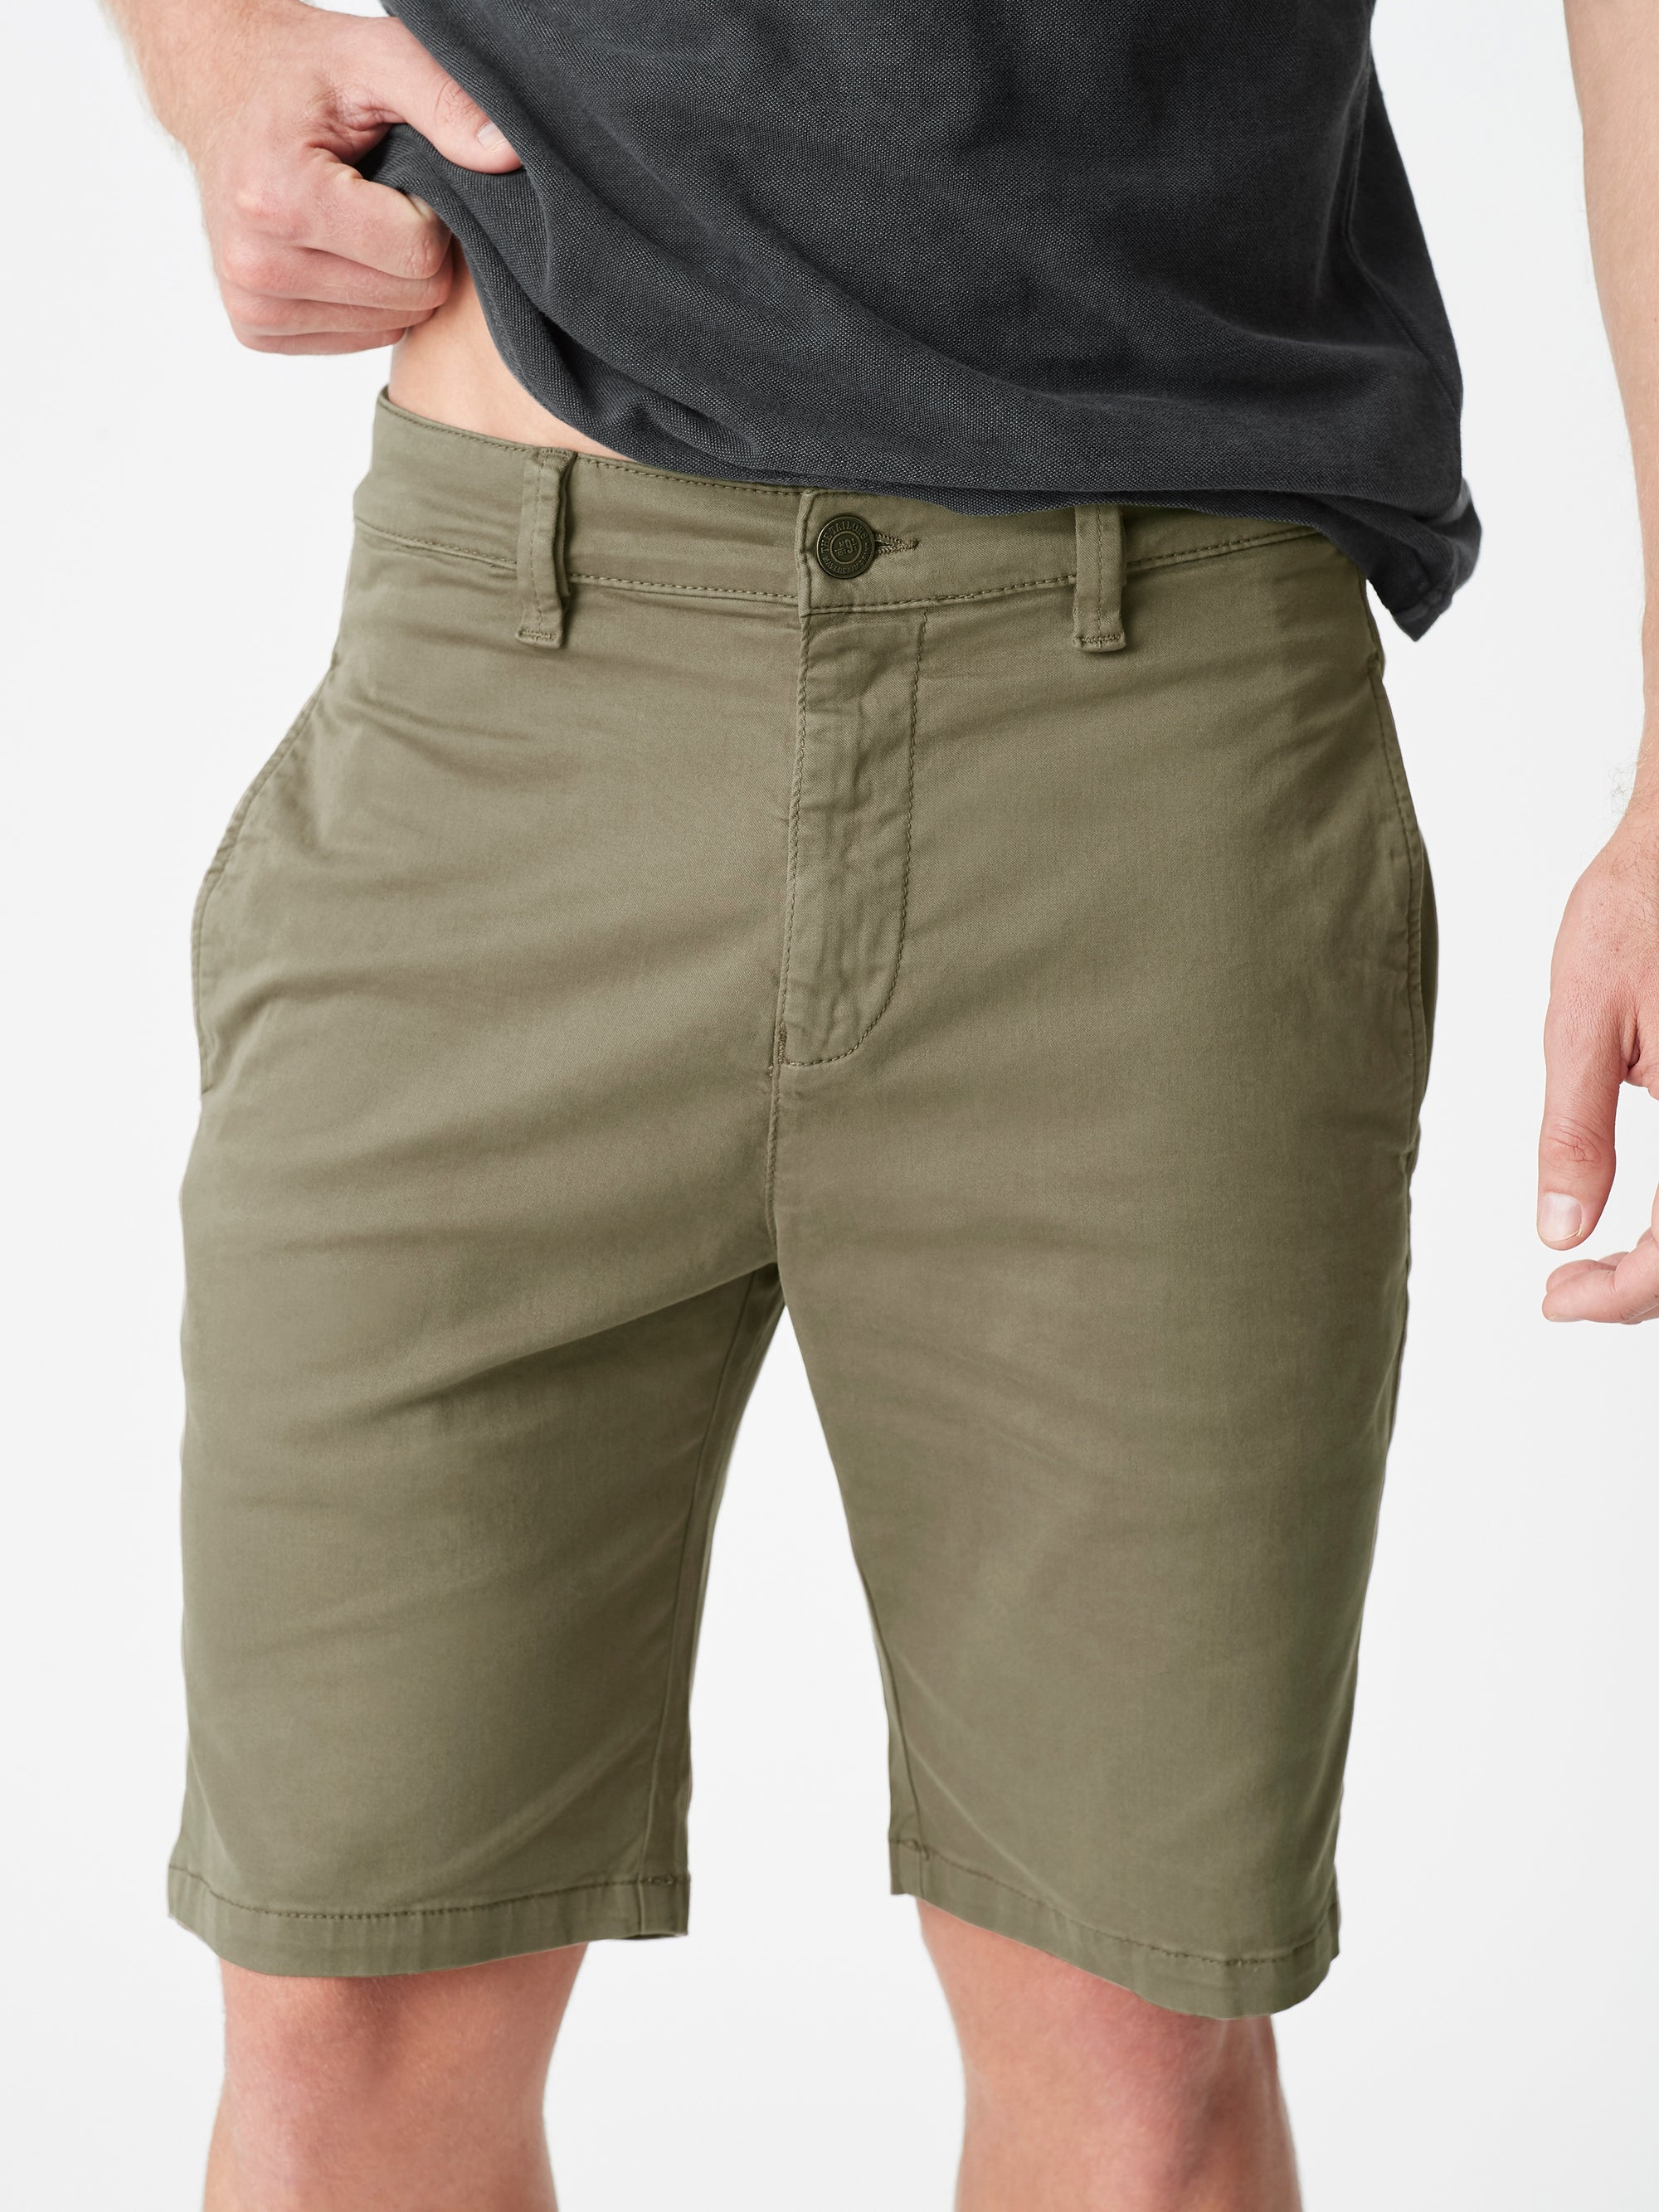 Simon Shorts in Sage Twill